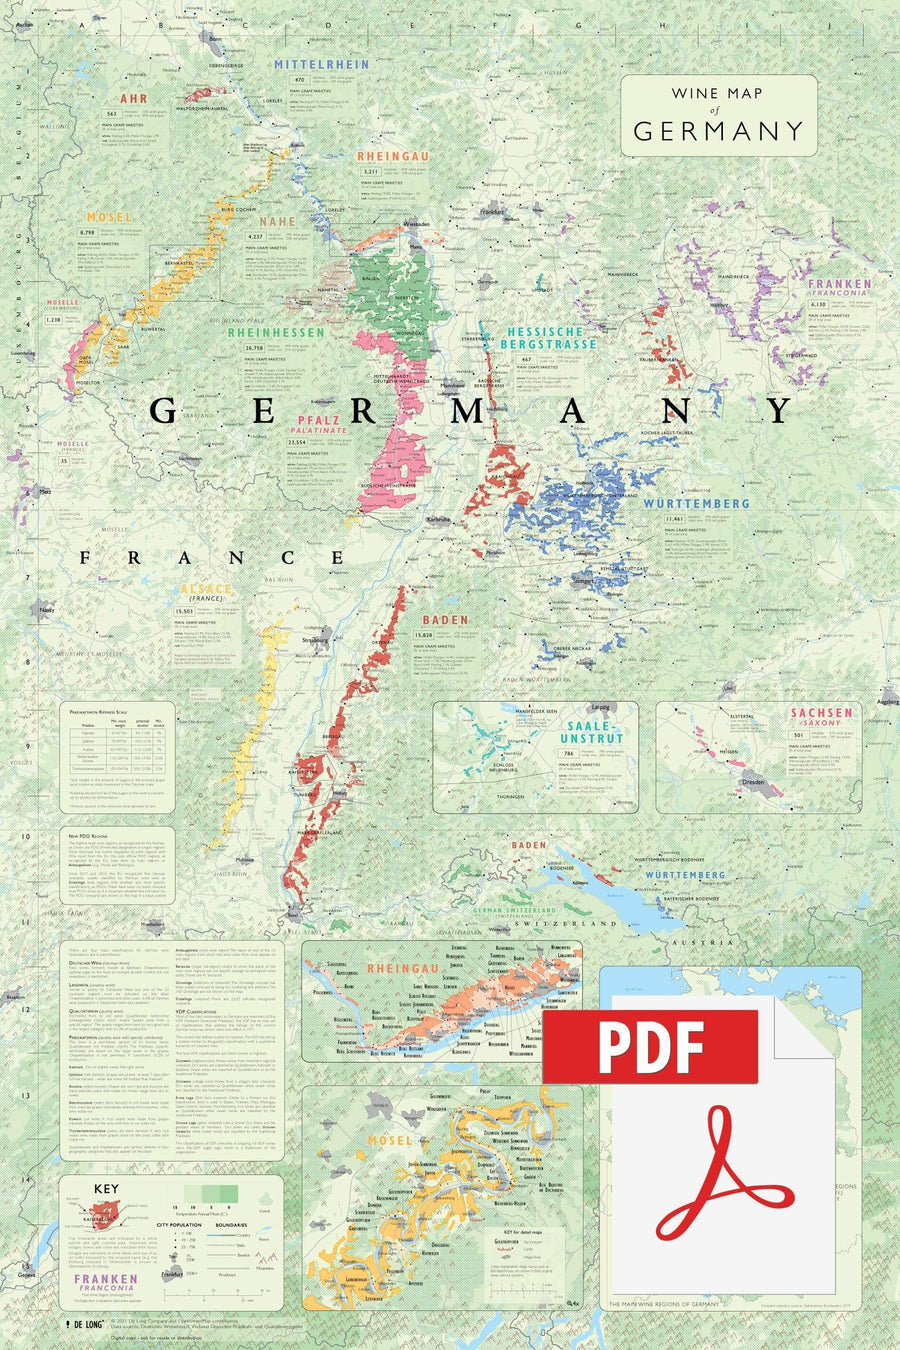 Wine Map of Germany - Digital Edition